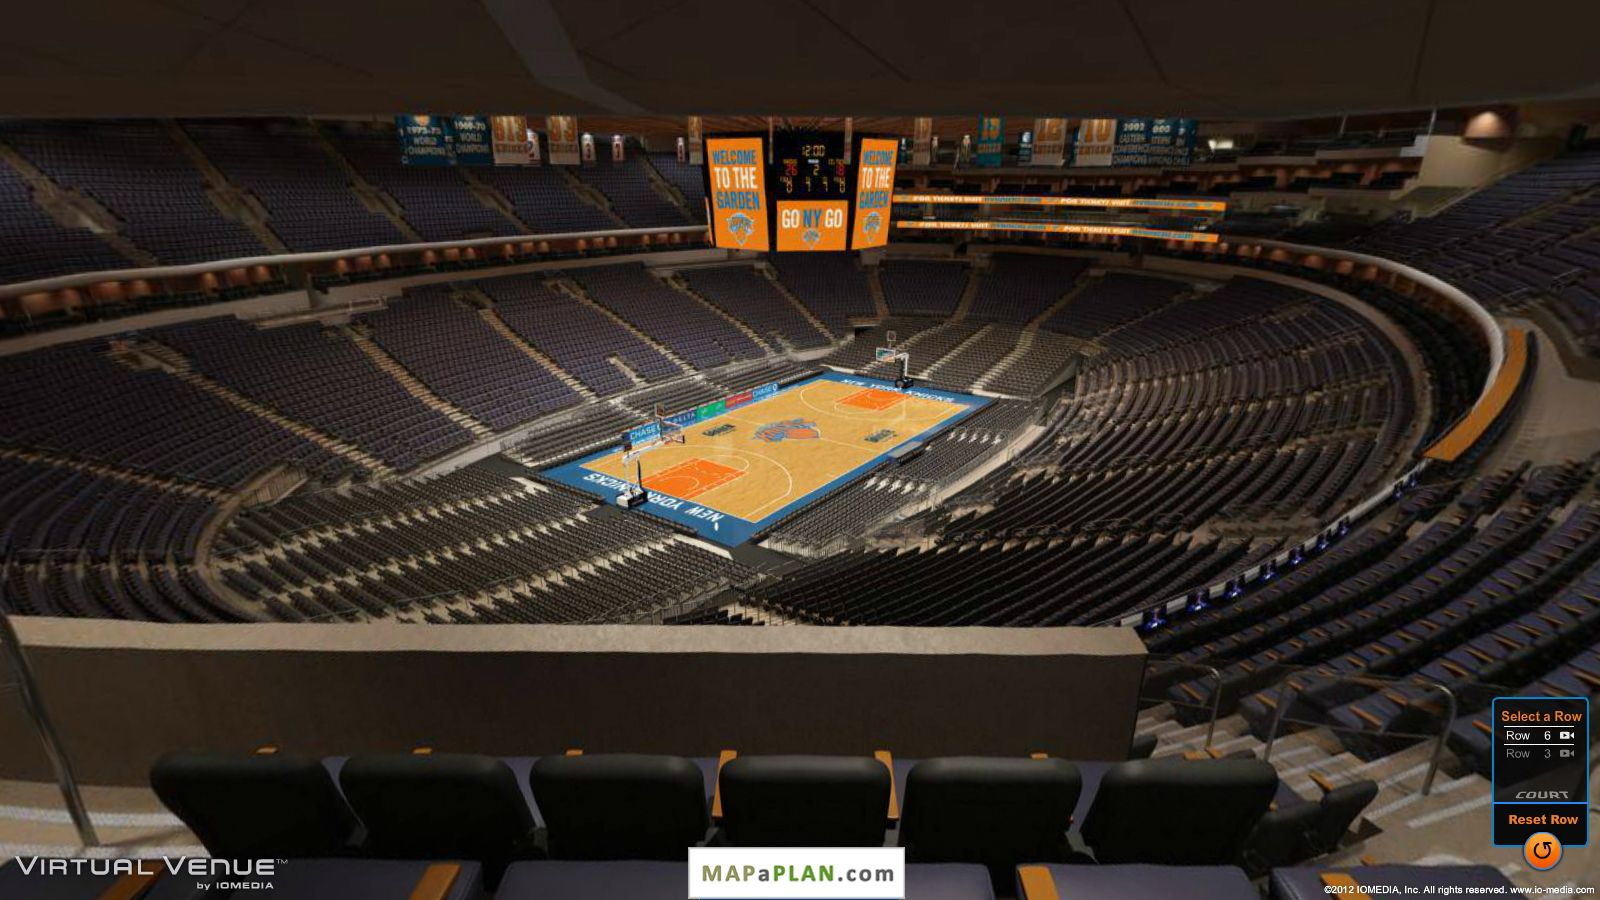 4497418d4147a9541bbb5ad38fbace3b - How Many Seats In Madison Square Gardens